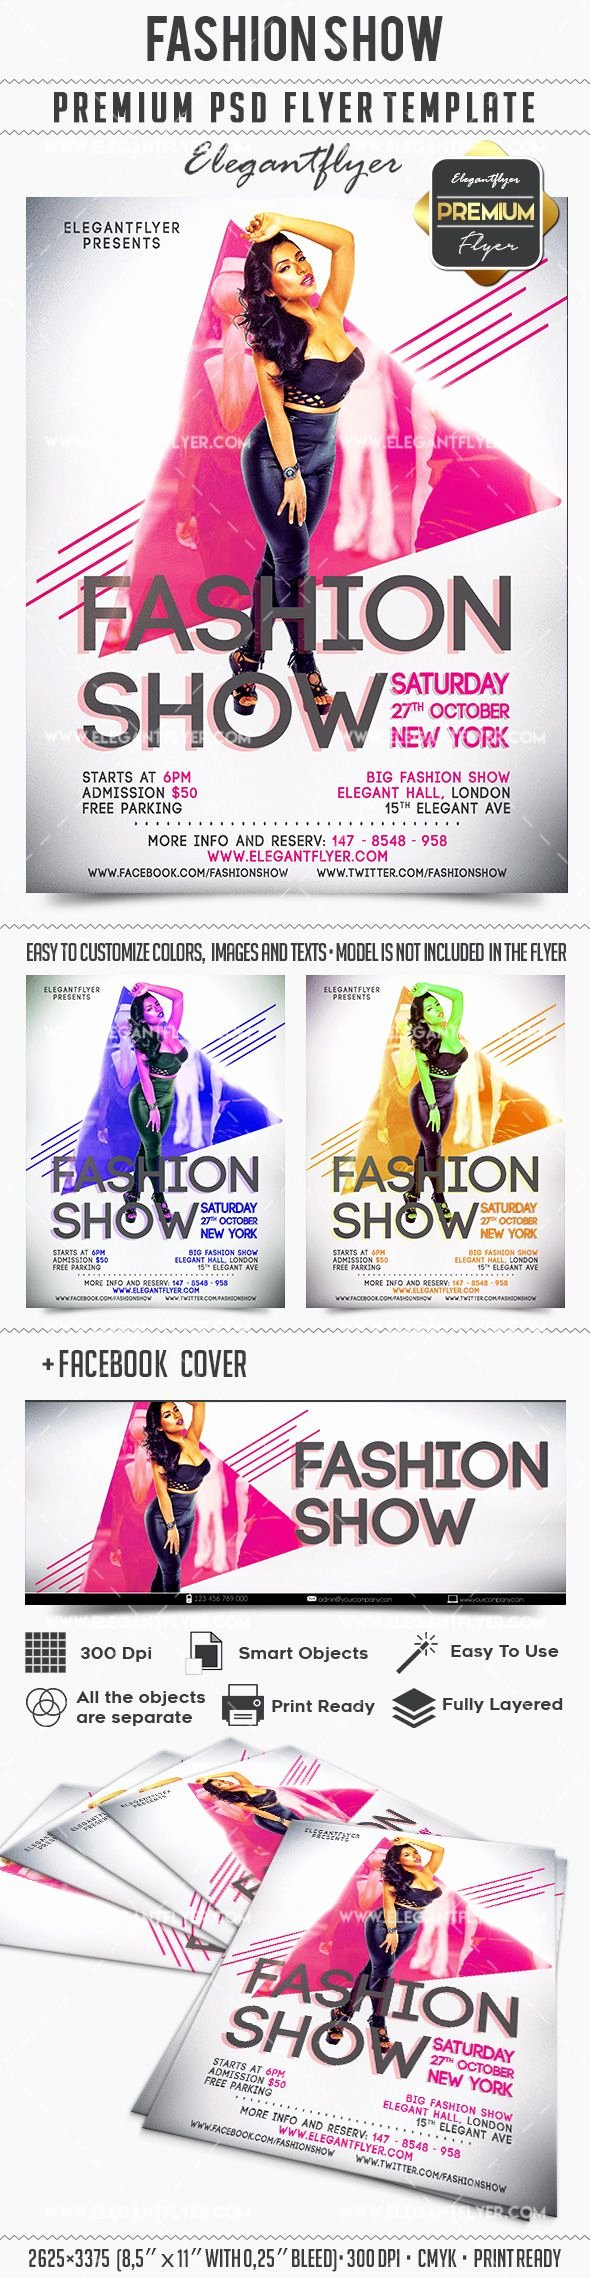 Fashion Show Flyer Template Best Of Fashion Show Invitation Flyer Template – by Elegantflyer